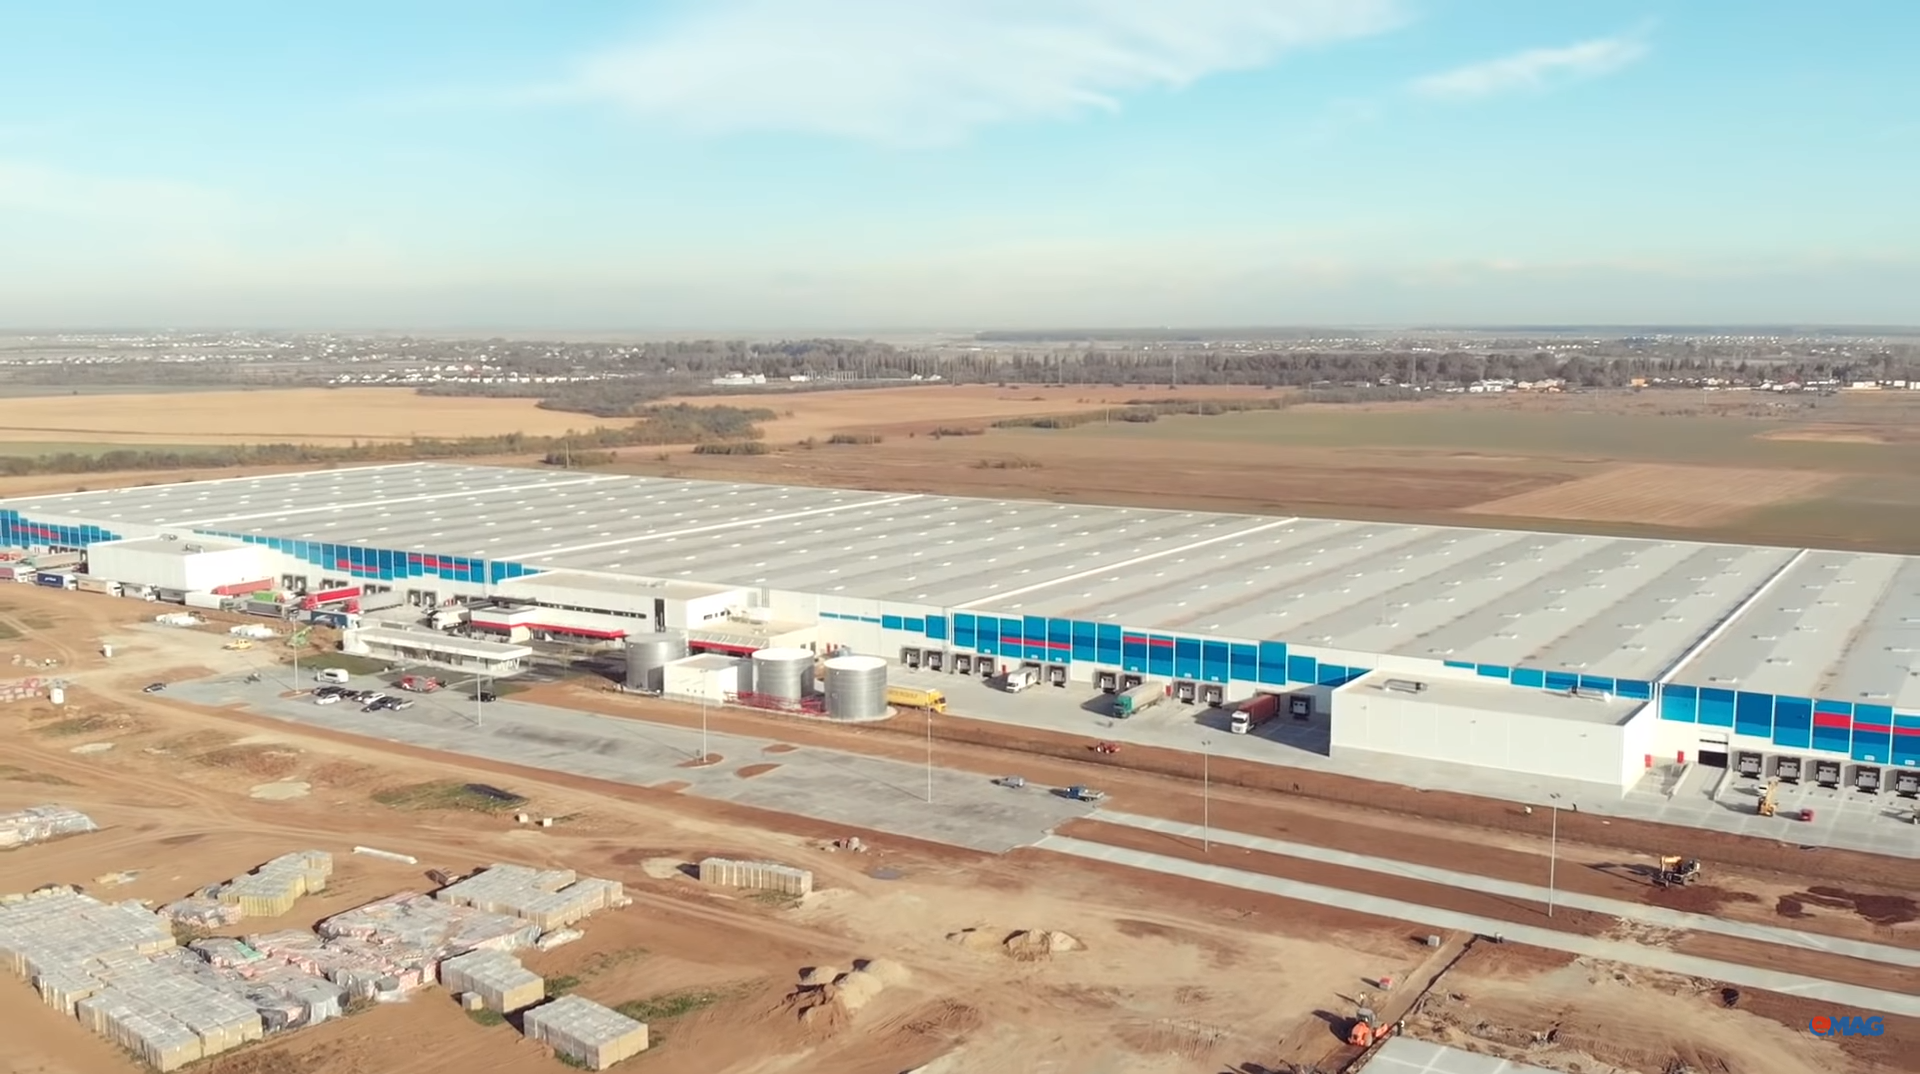 New 127,000 sq.m. eMAG Warehouse finalised